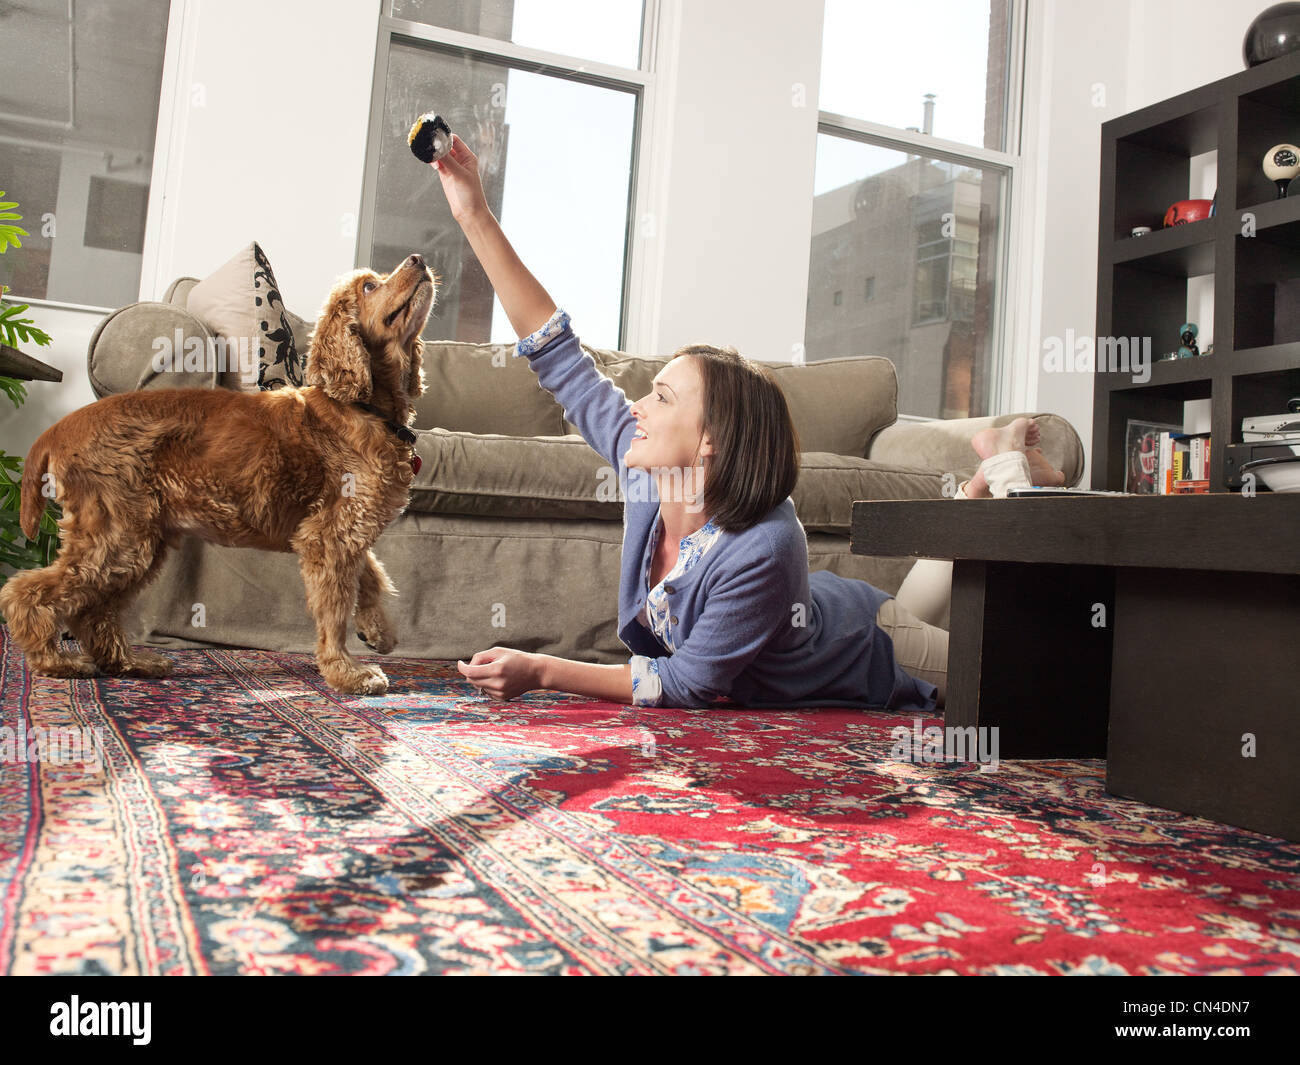 Mid adult woman teching pet dog in living room - Stock Image